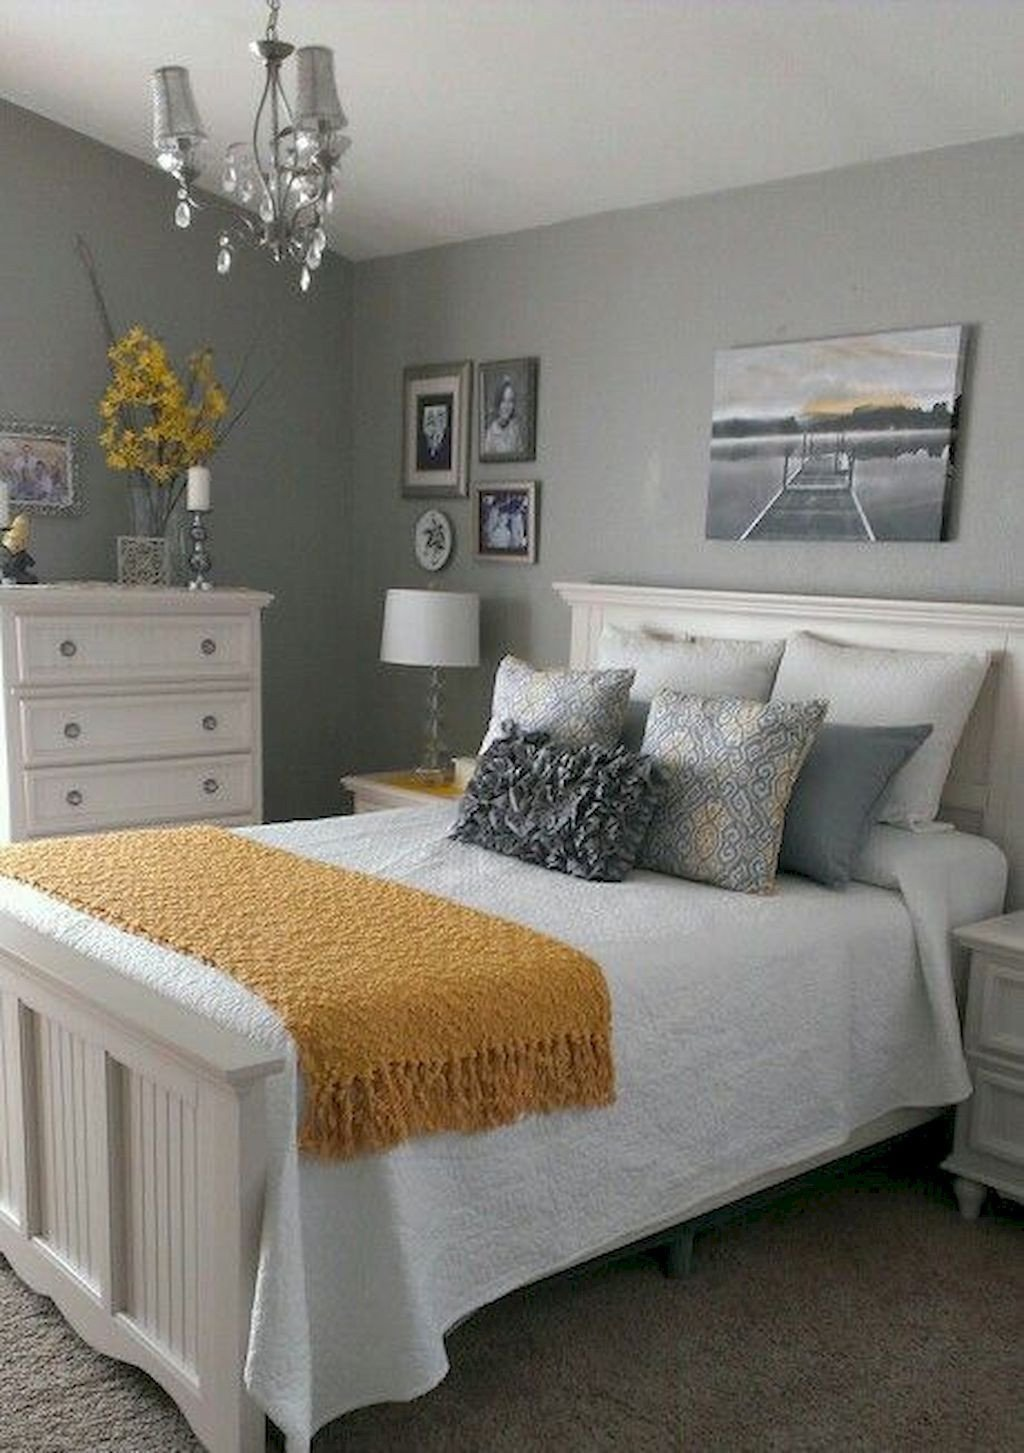 White and Gray Bedroom Inspirational Grey Bedroom Ideas An Option Of Stunning Bedroom Styles